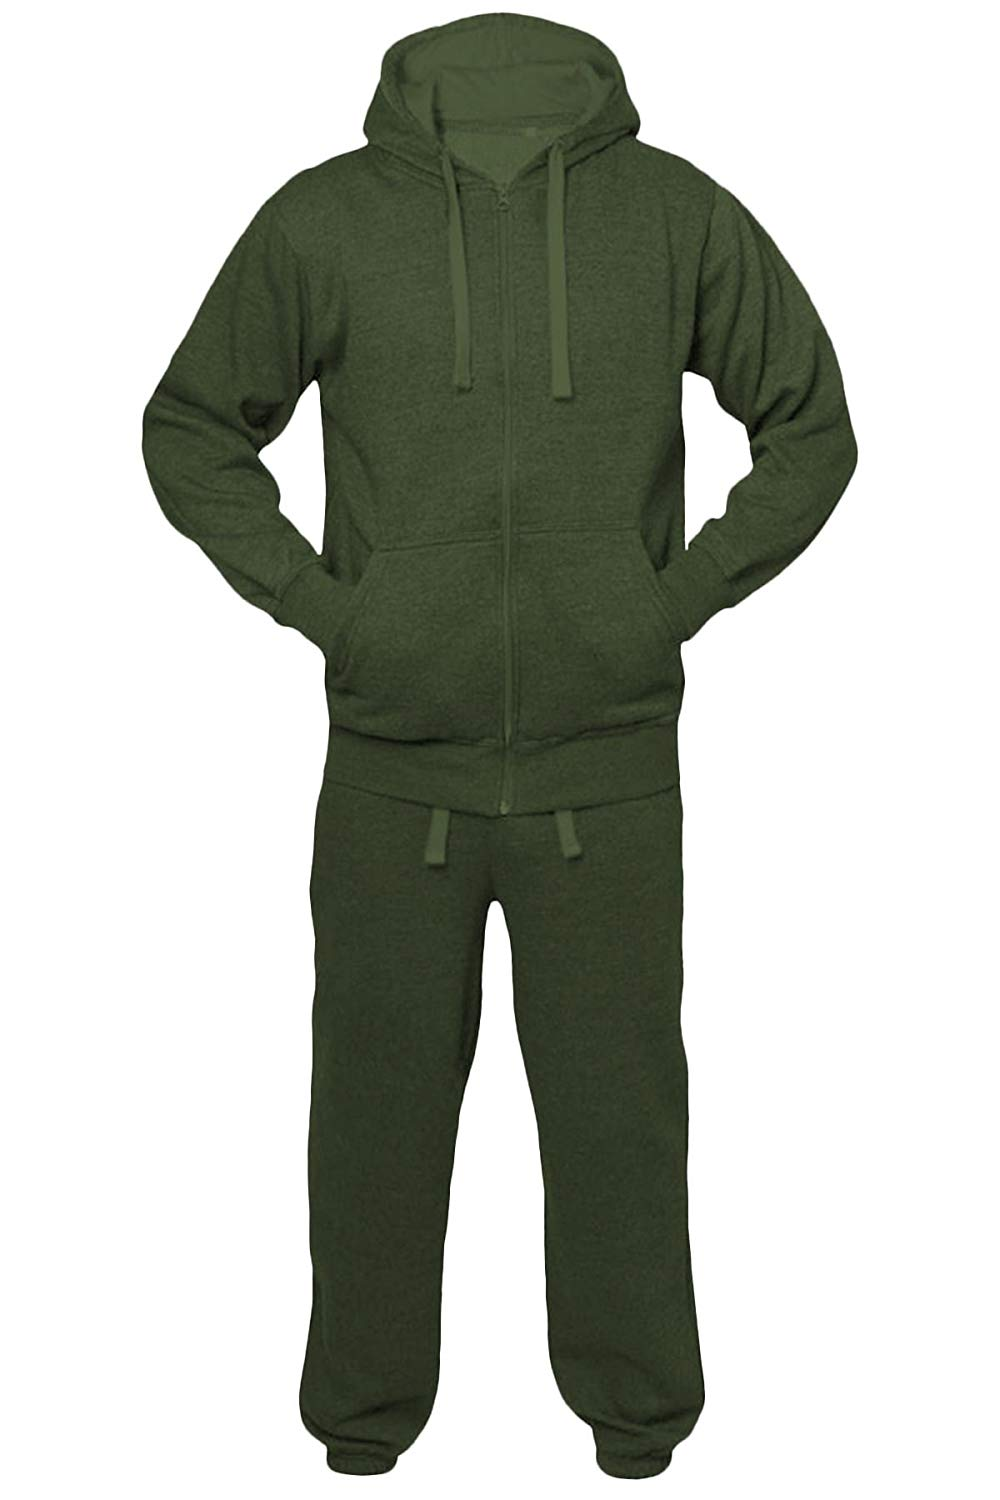 lowest price 49176 aa43c Get Quotations · Shelikes New Mens Womens Unisex Plain Jogging Sports Full  Tracksuit Set